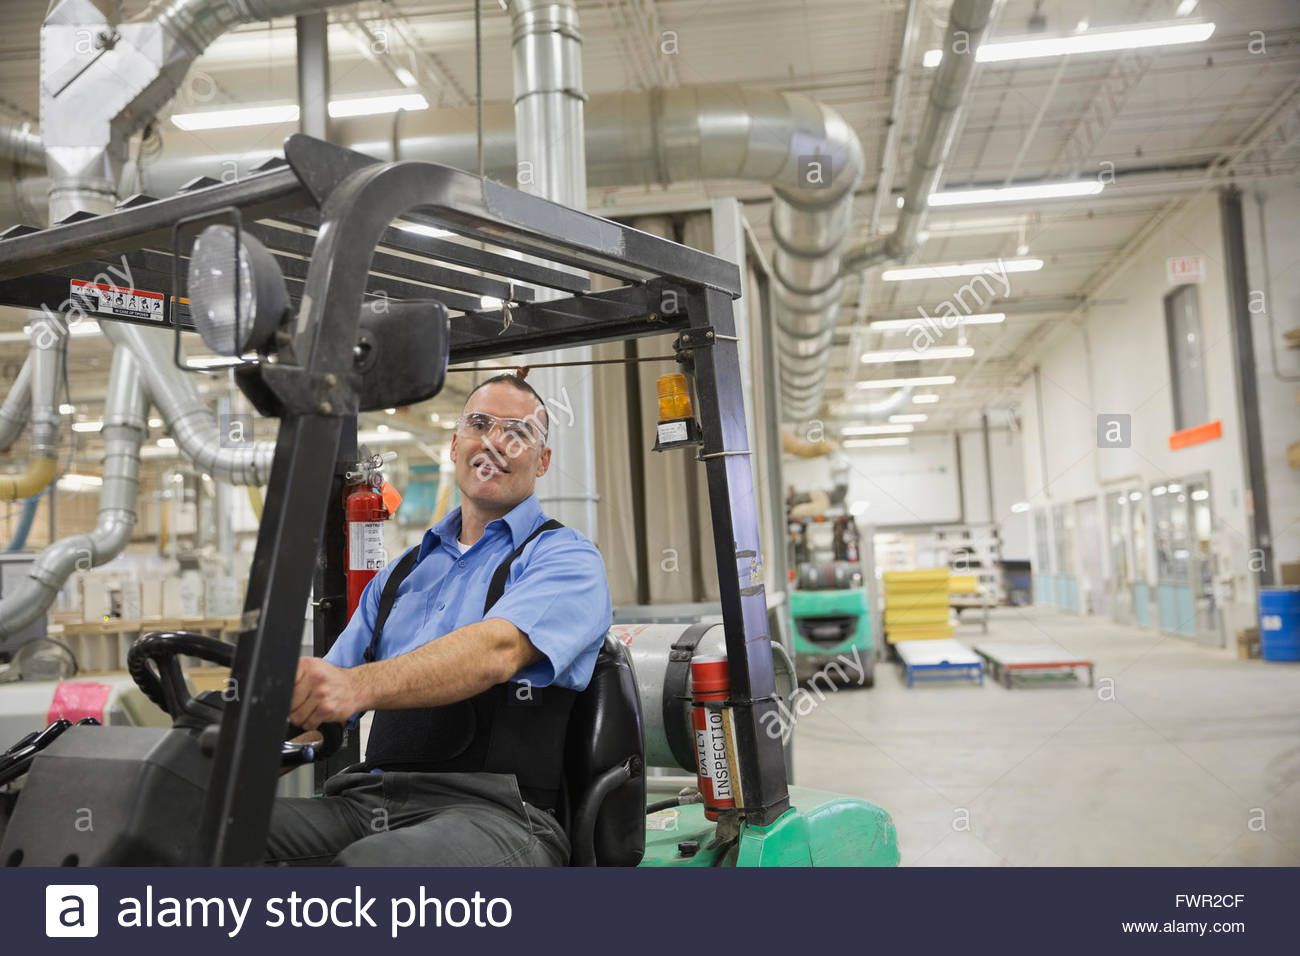 Manual worker driving forklift in factory - Stock Image